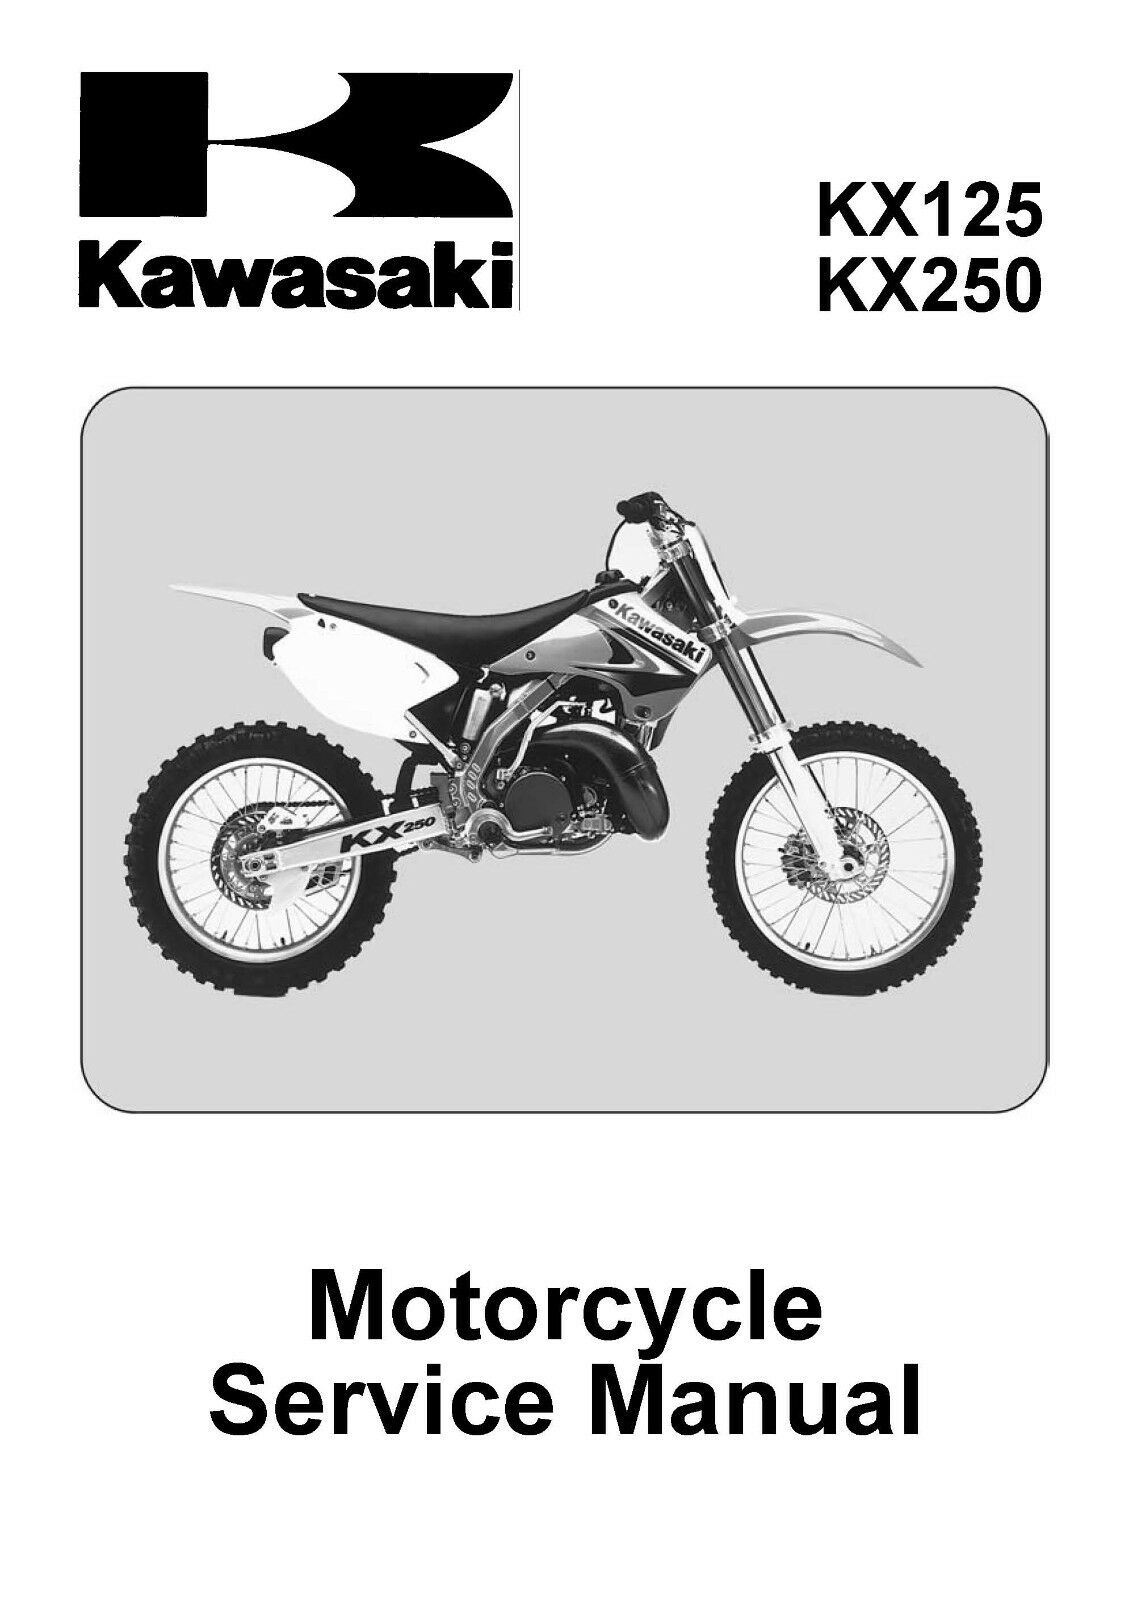 Kawasaki service manual 2008 KX125-M8F 1 of 12Only 1 available ...